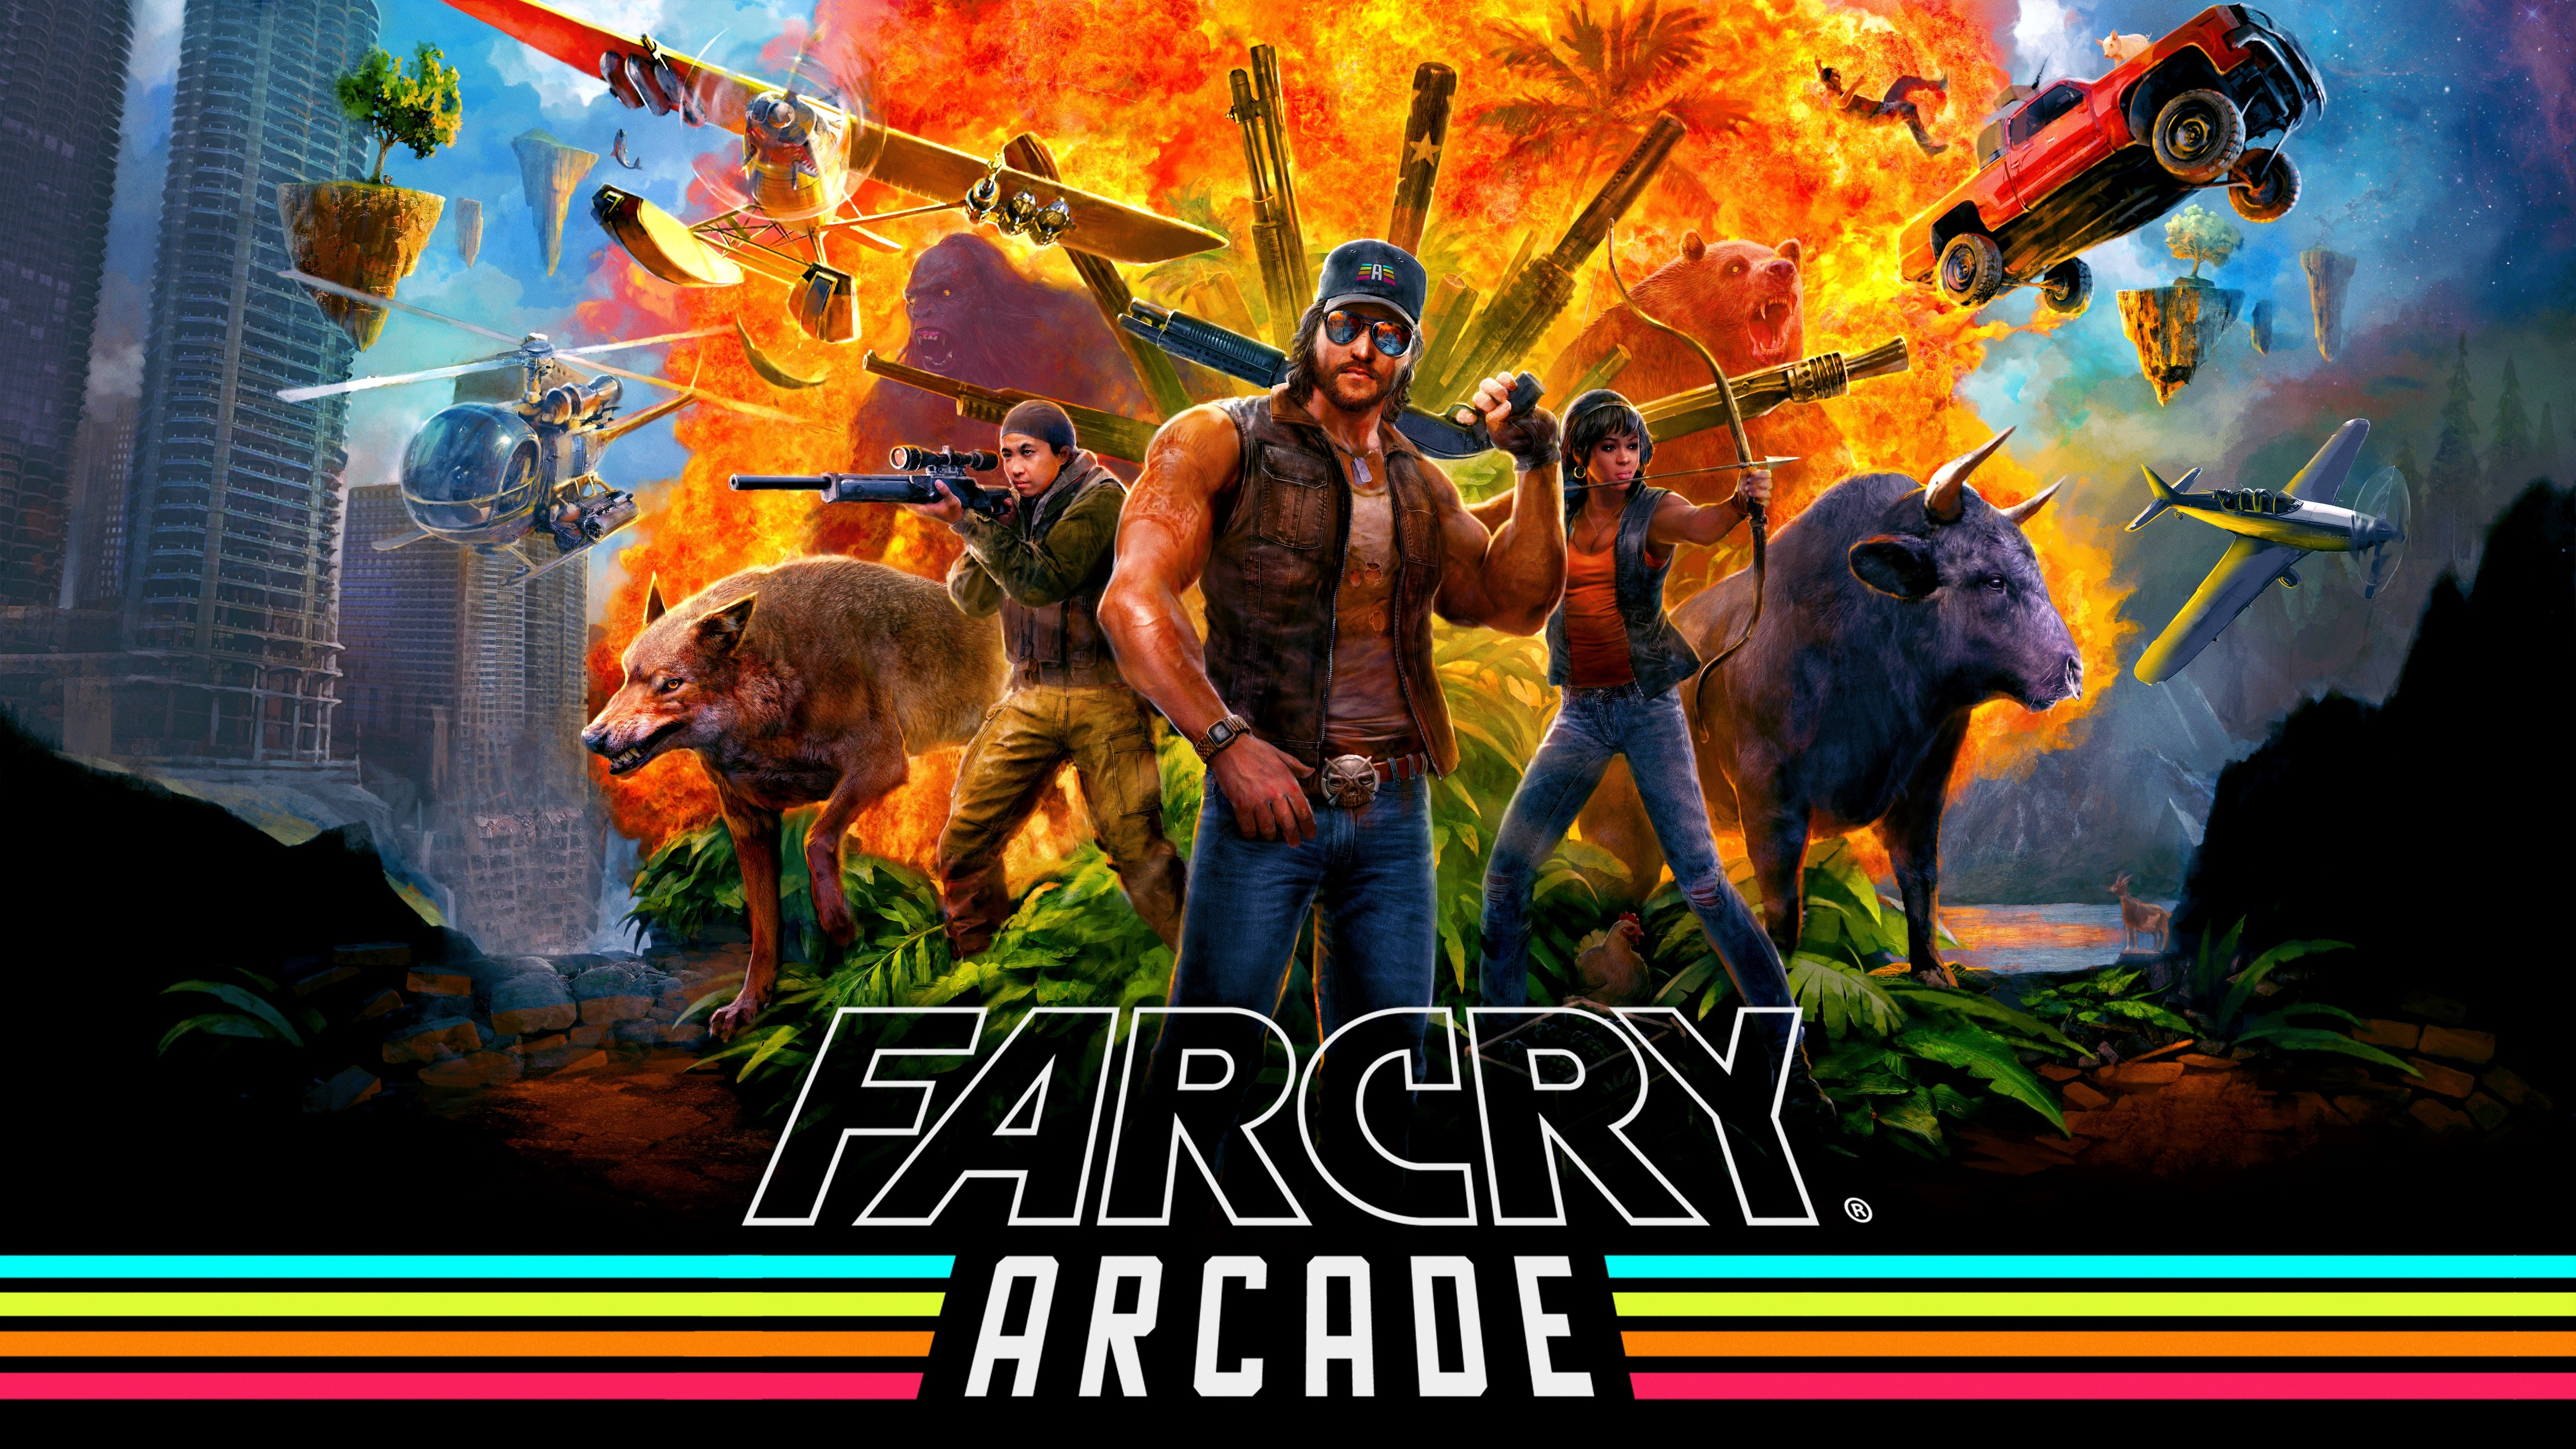 Far Cry 5 Wallpaper 4k: Far Cry 5 Arcade 2018, HD Games, 4k Wallpapers, Images